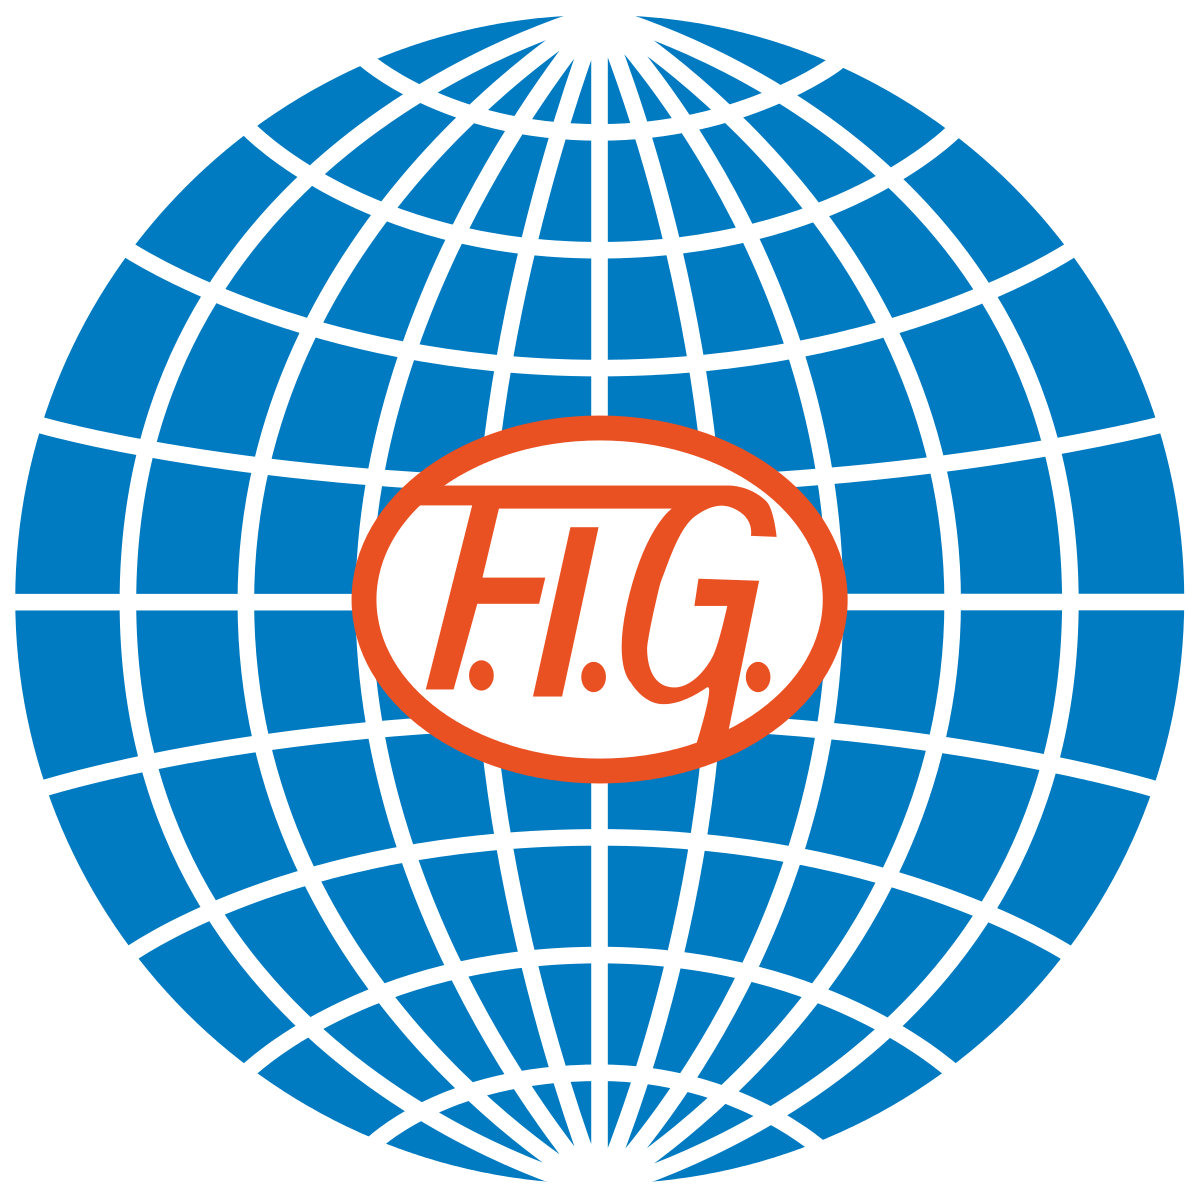 Fédération Internationale de Gymnastique (FIG)